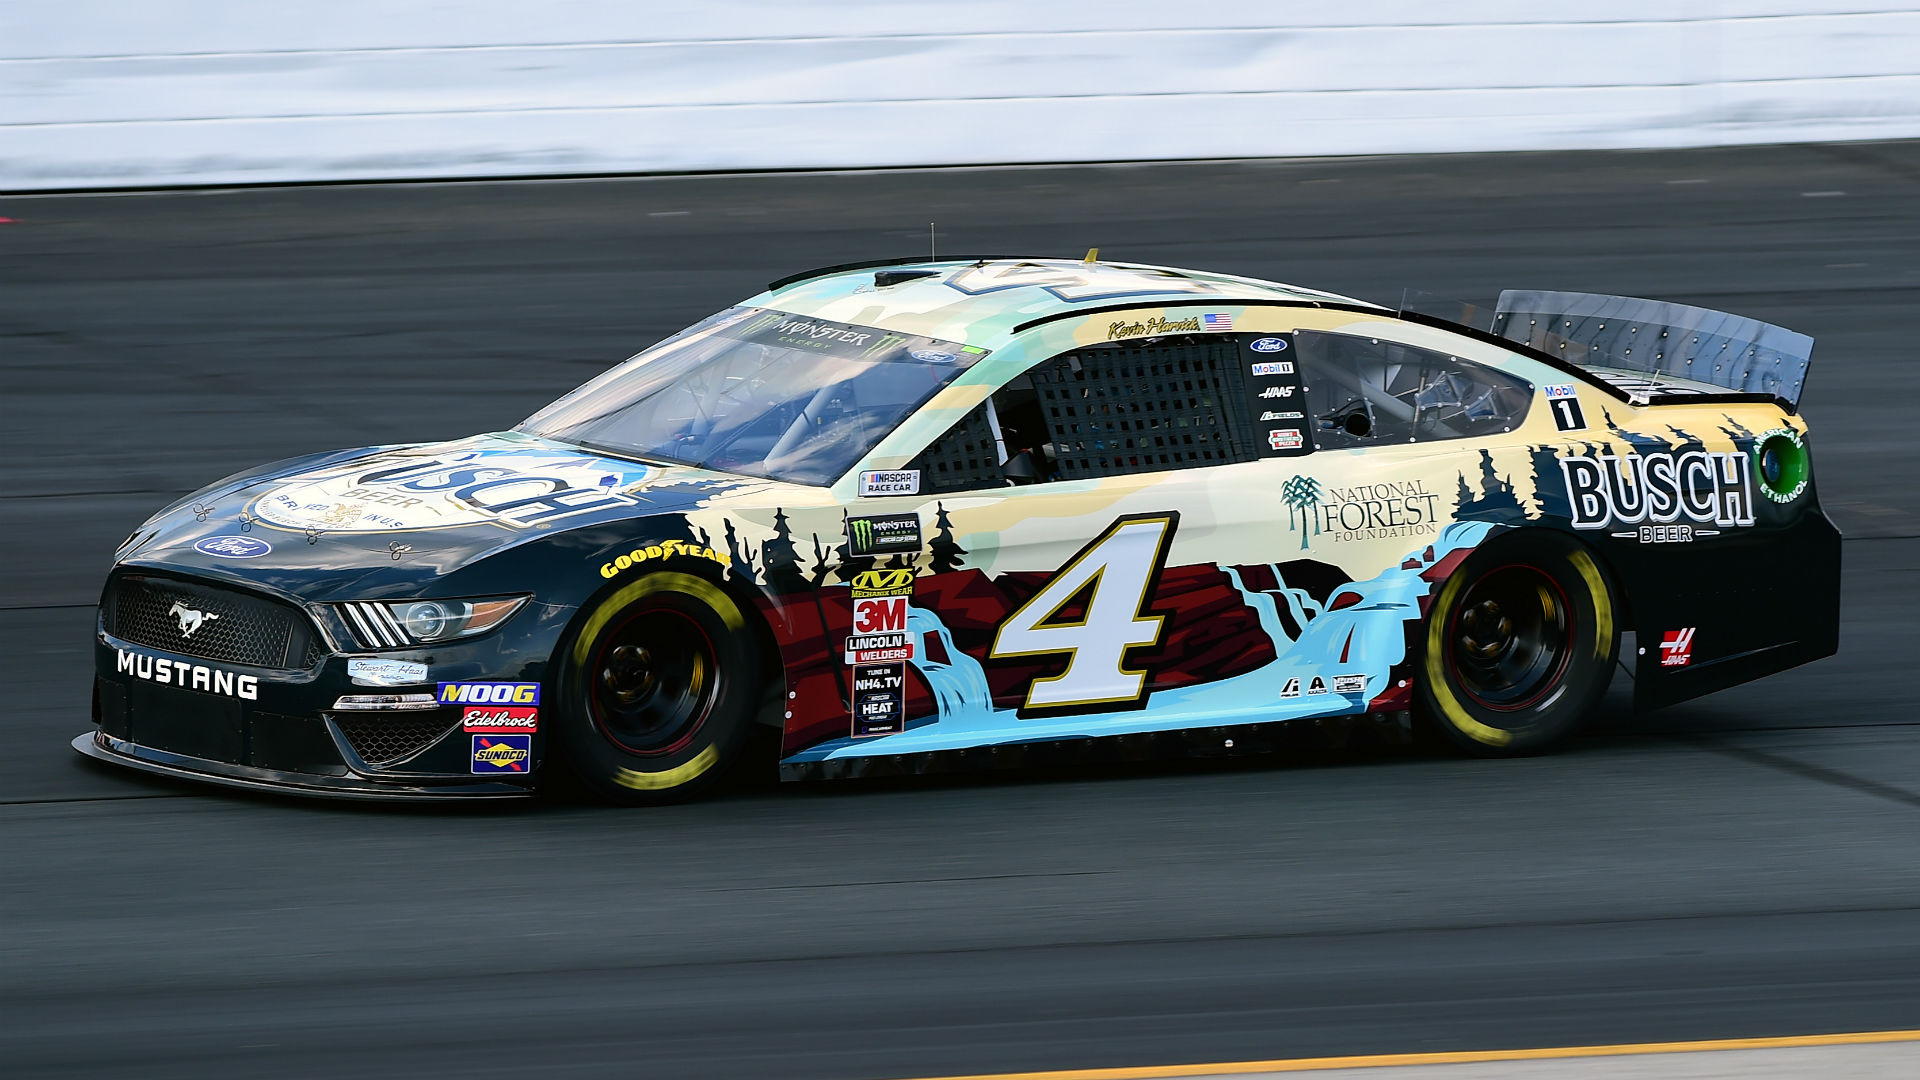 NASCAR results at New Hampshire: Kevin Harvick picks up first win of season in Foxwoods Resort Casino 301